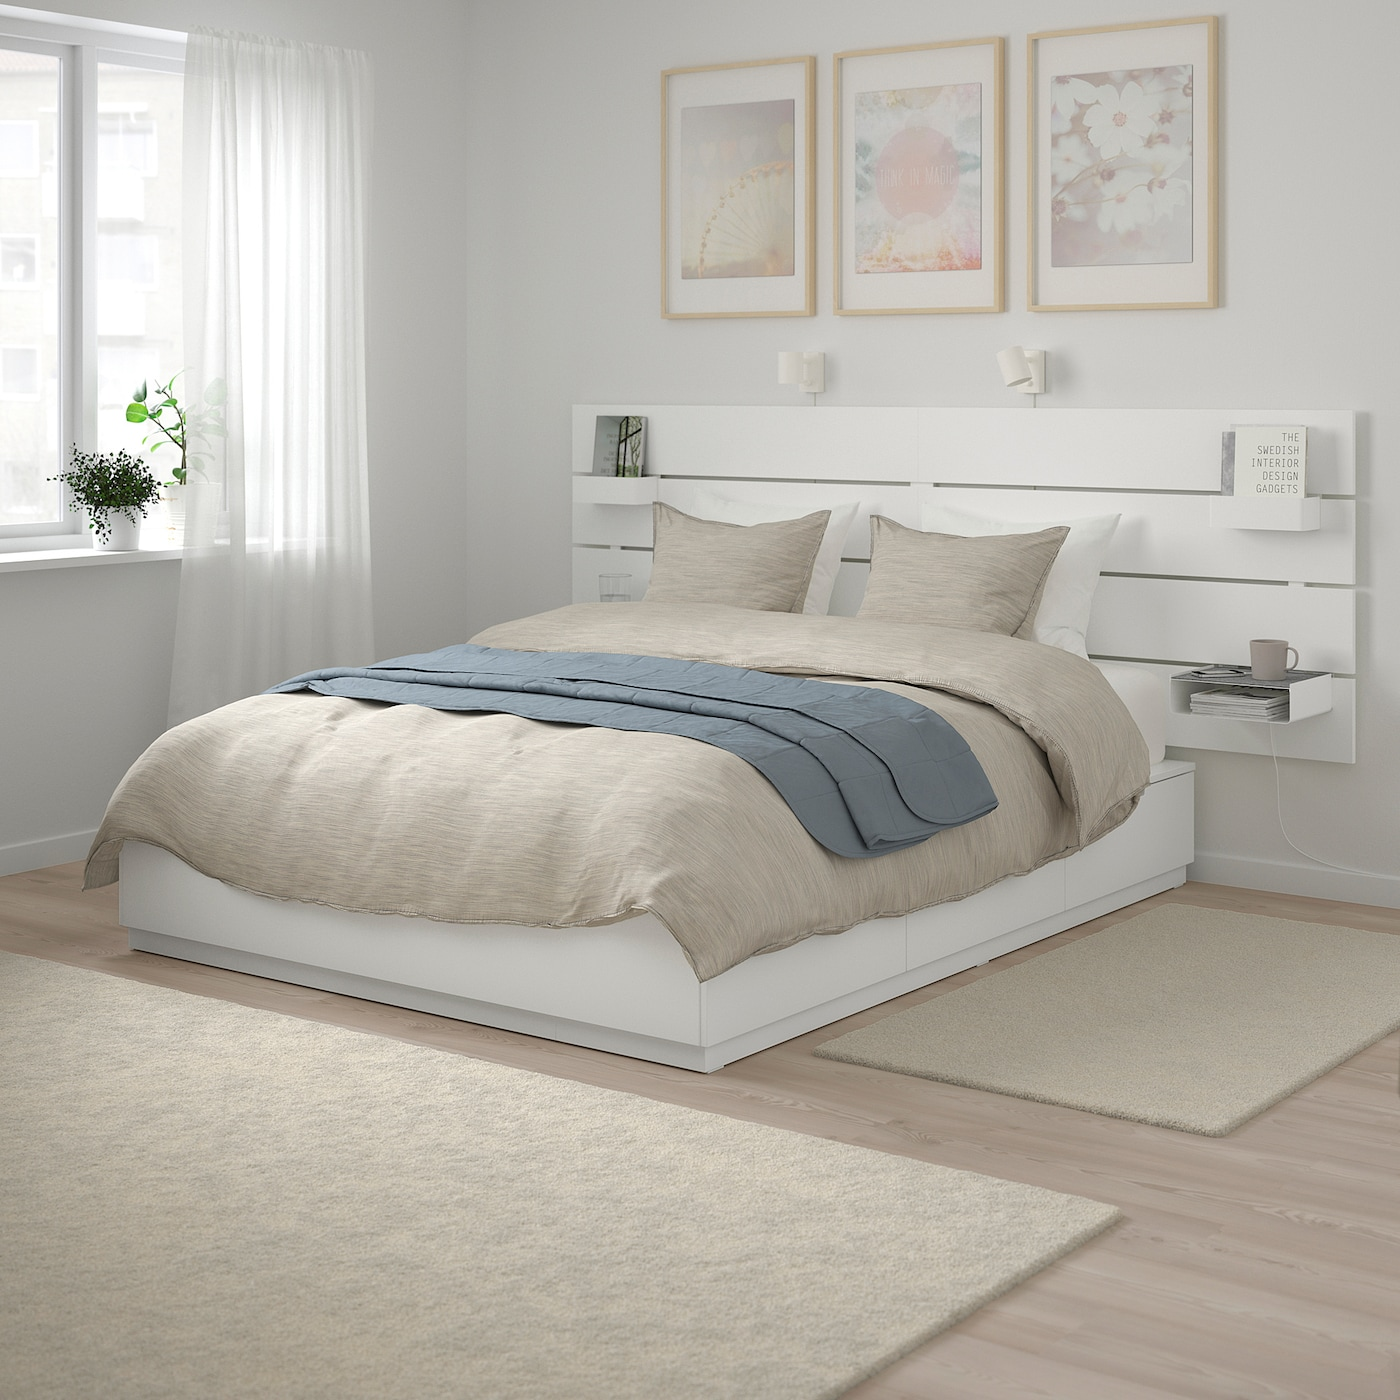 NORDLI Bed with headboard and storage - white Queen